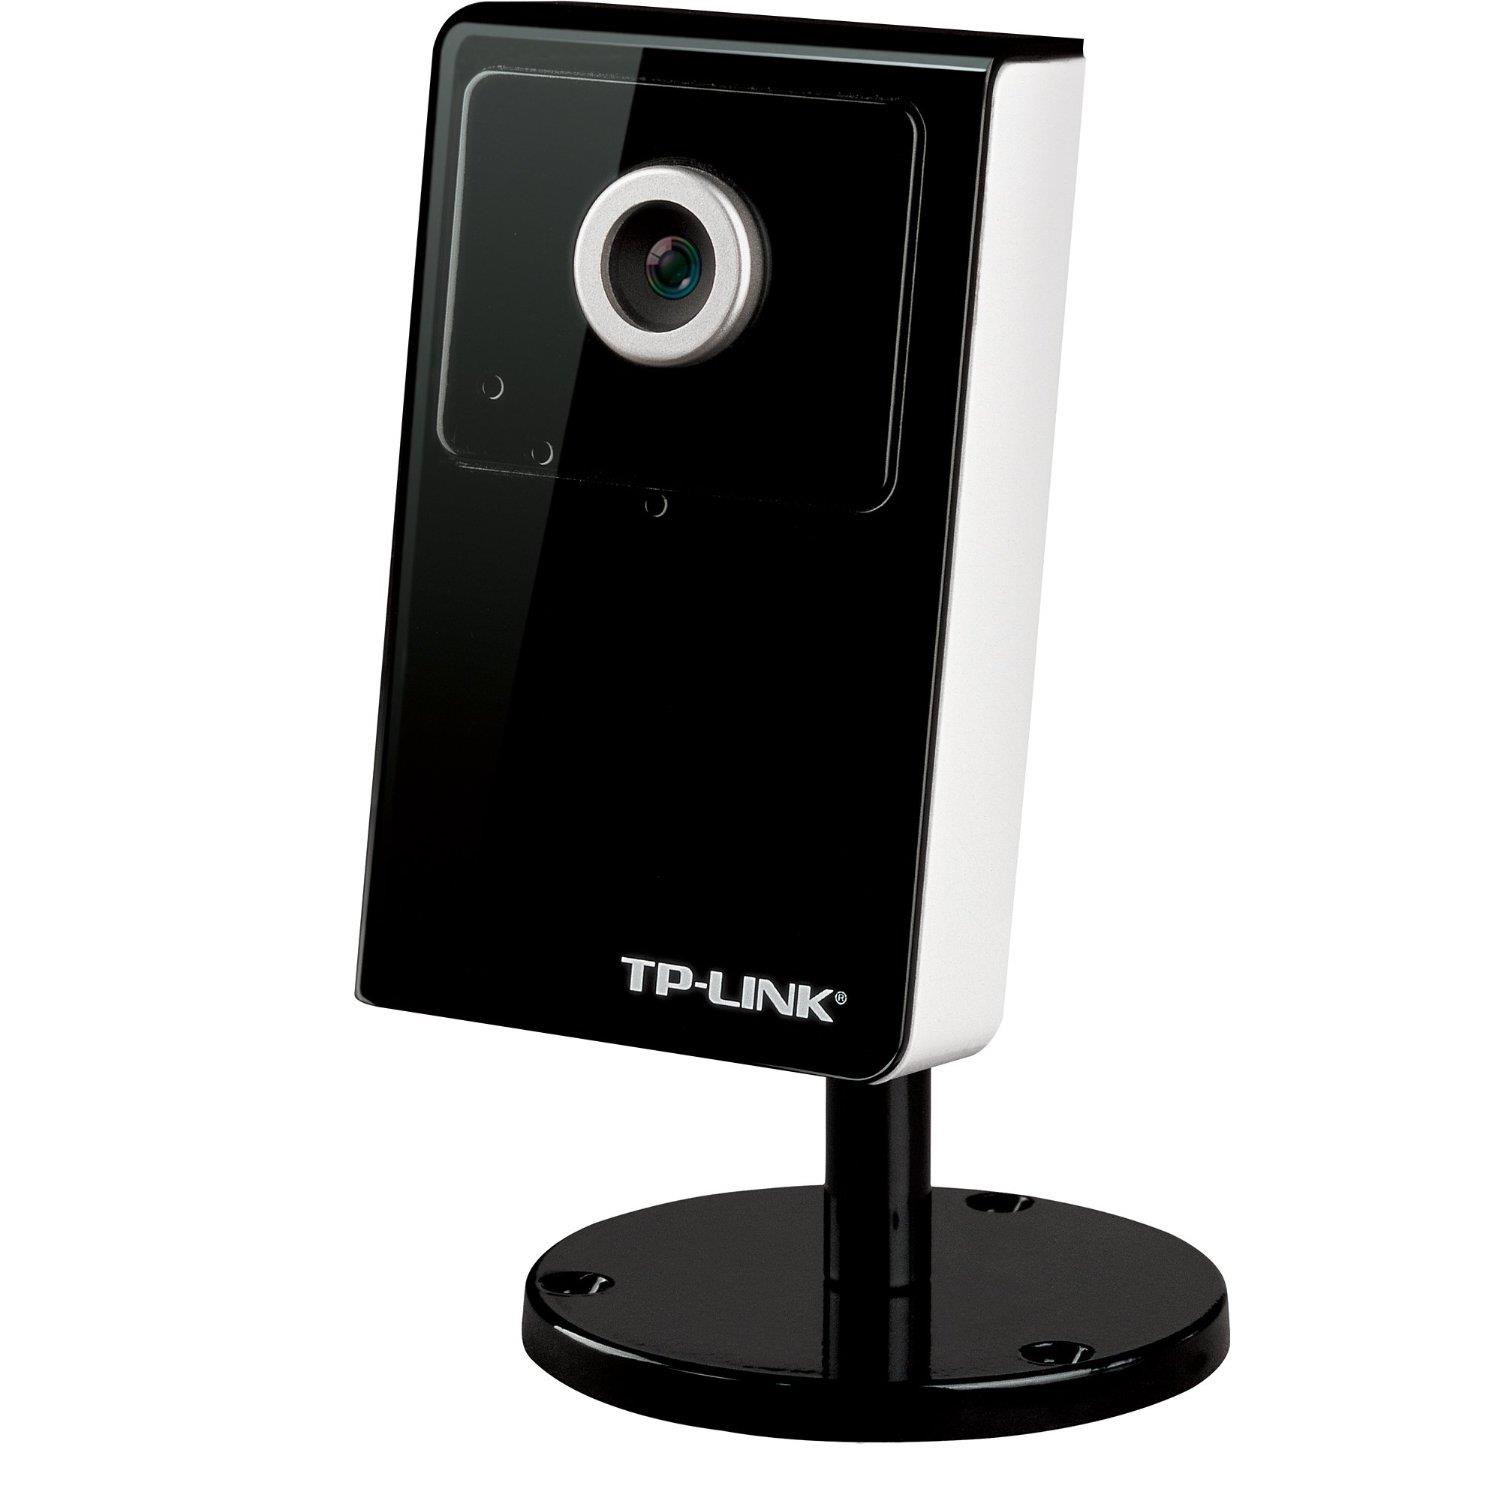 TP-LINK TL-SC3130G 54nBPS Wireless Day/Night Surveillance Camera